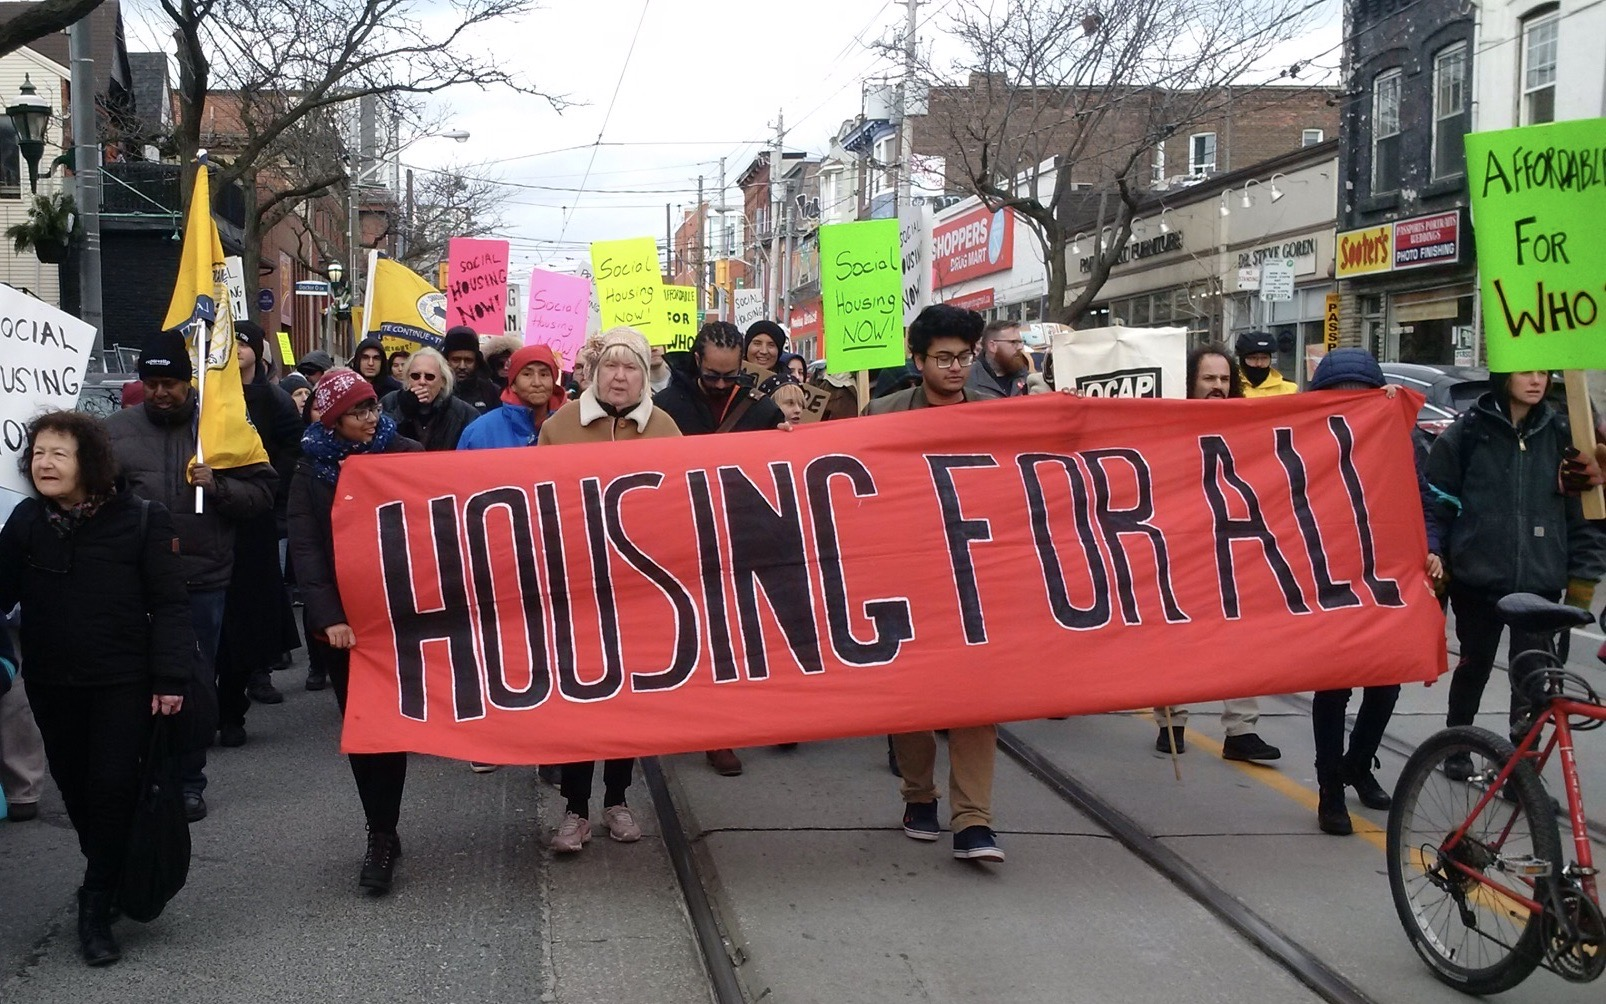 """Housing advocates carry a banner. Black words on red read, """"Housing for All."""" Many signs in background say """"Social Housing Now."""" Image: Cathy Crowe/Used with permission"""